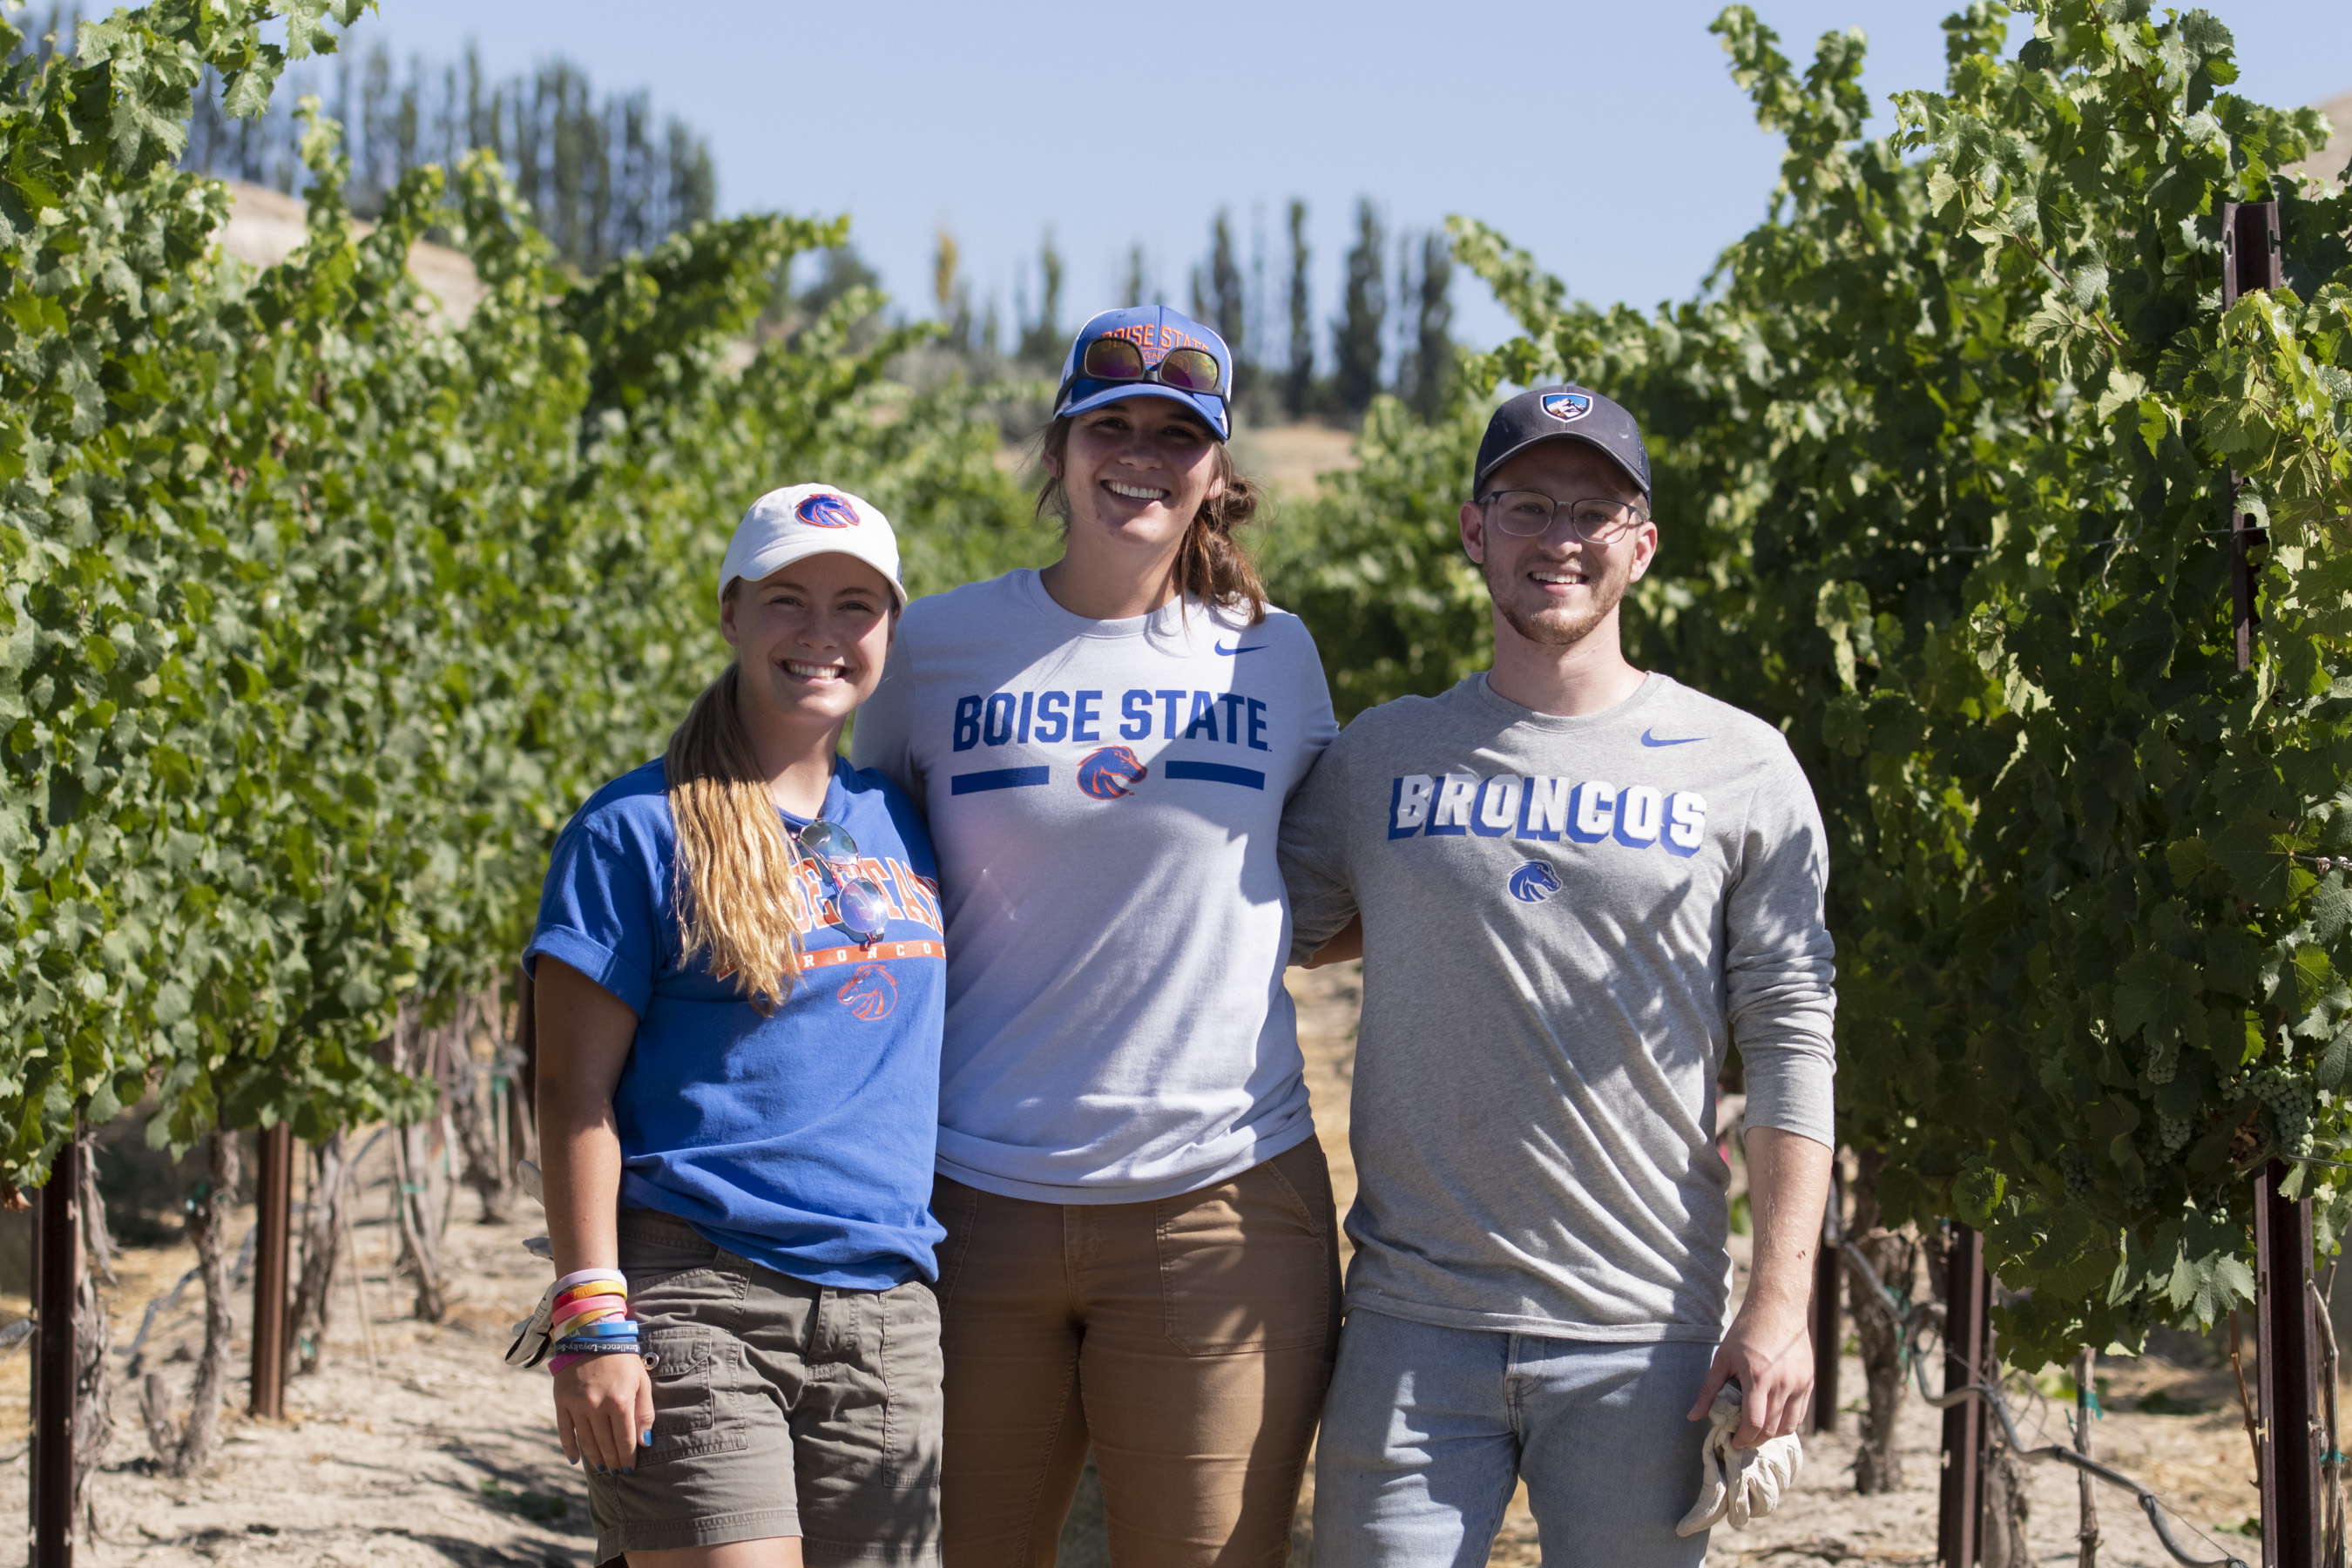 Three students standing together at dig site in Idaho vineyard